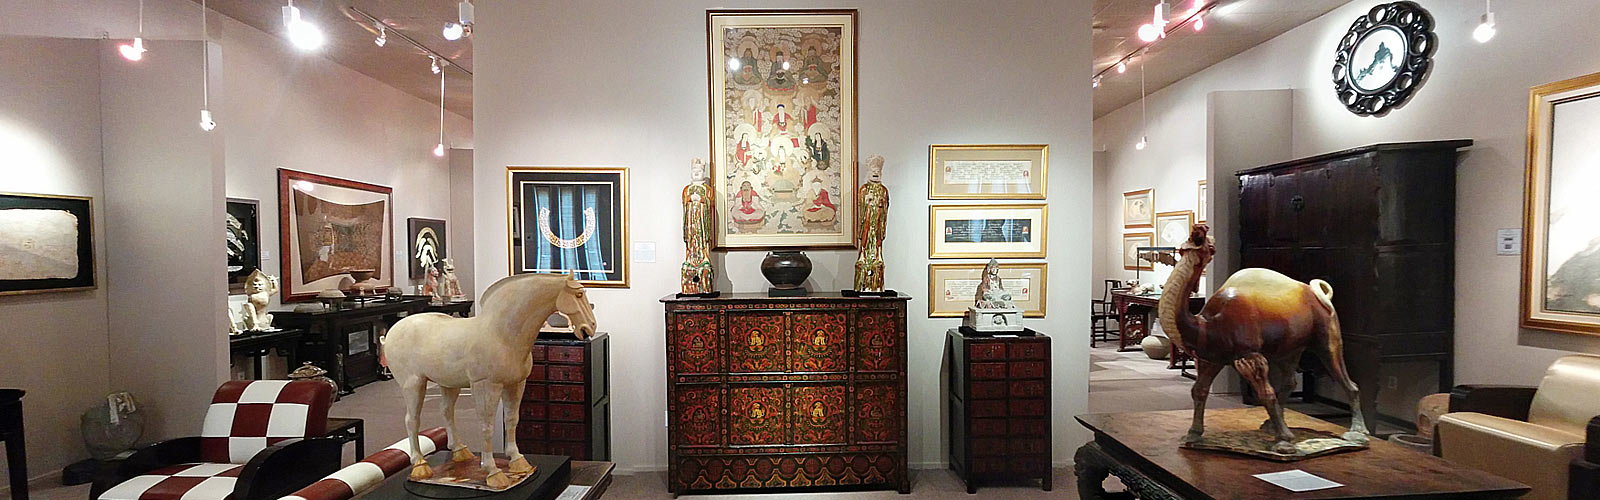 TK Asian Antiquities Williamsburg Virginia Furniture Warehouse